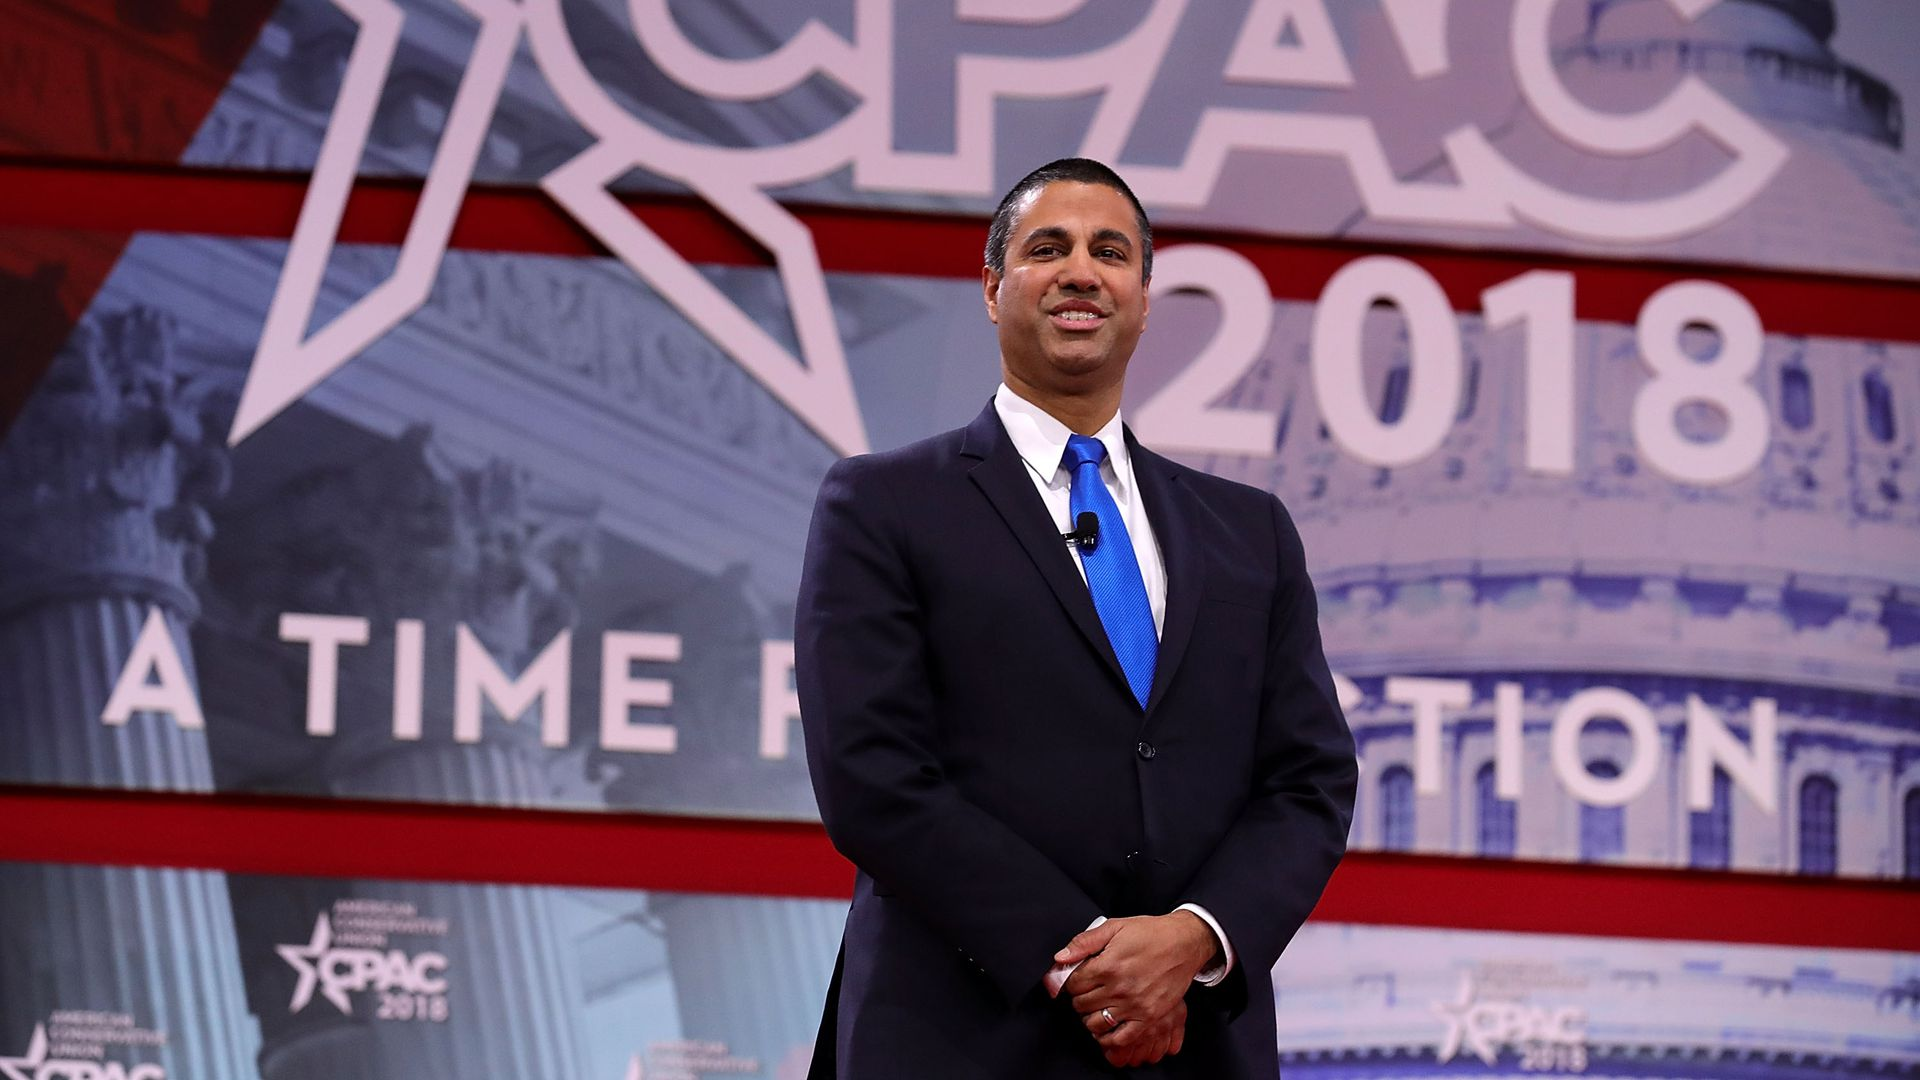 Ajit Pai stands in front of a CPAC sign with his hands clasped